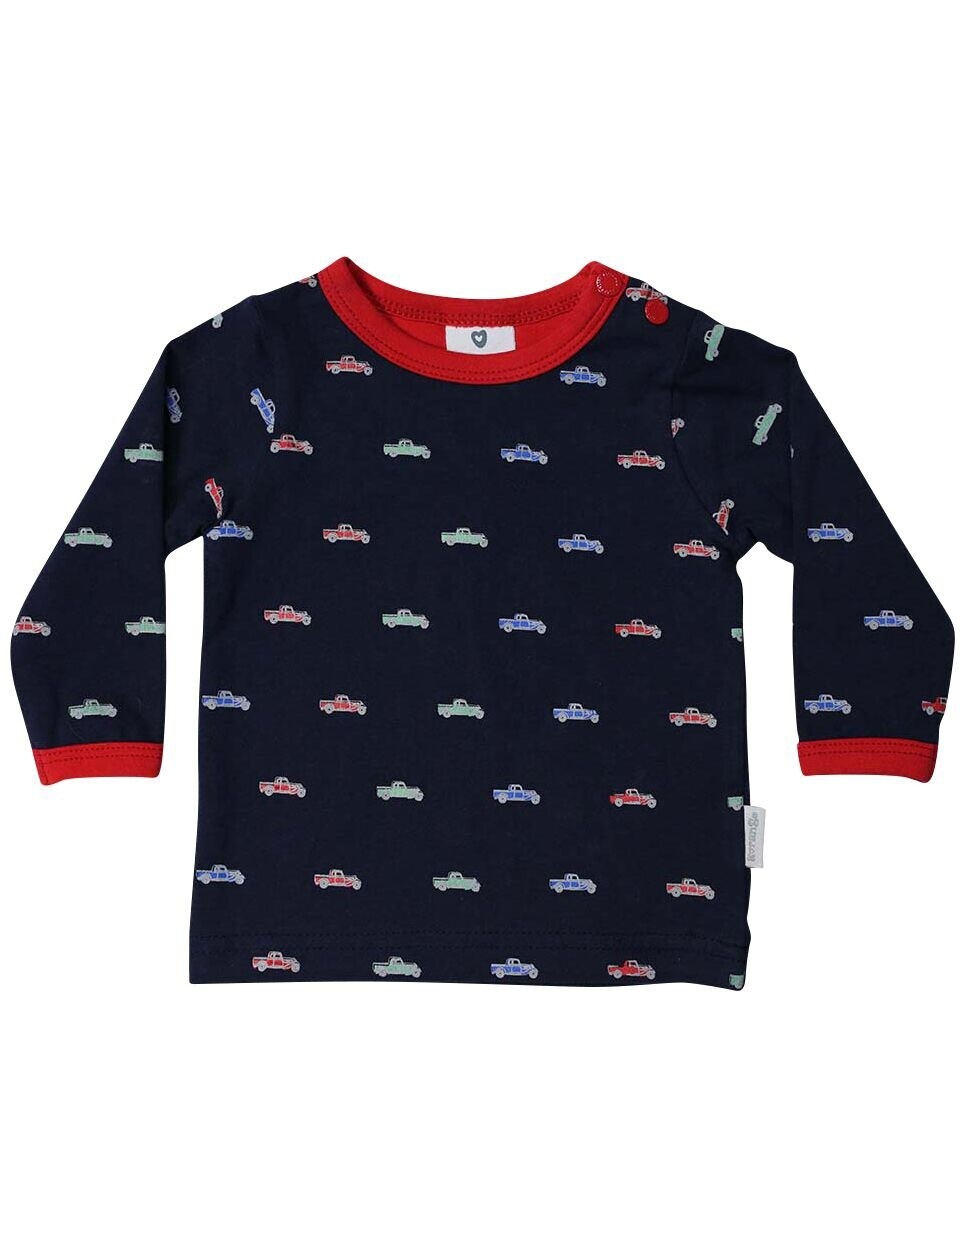 Aussie Ute L/S Top With Print